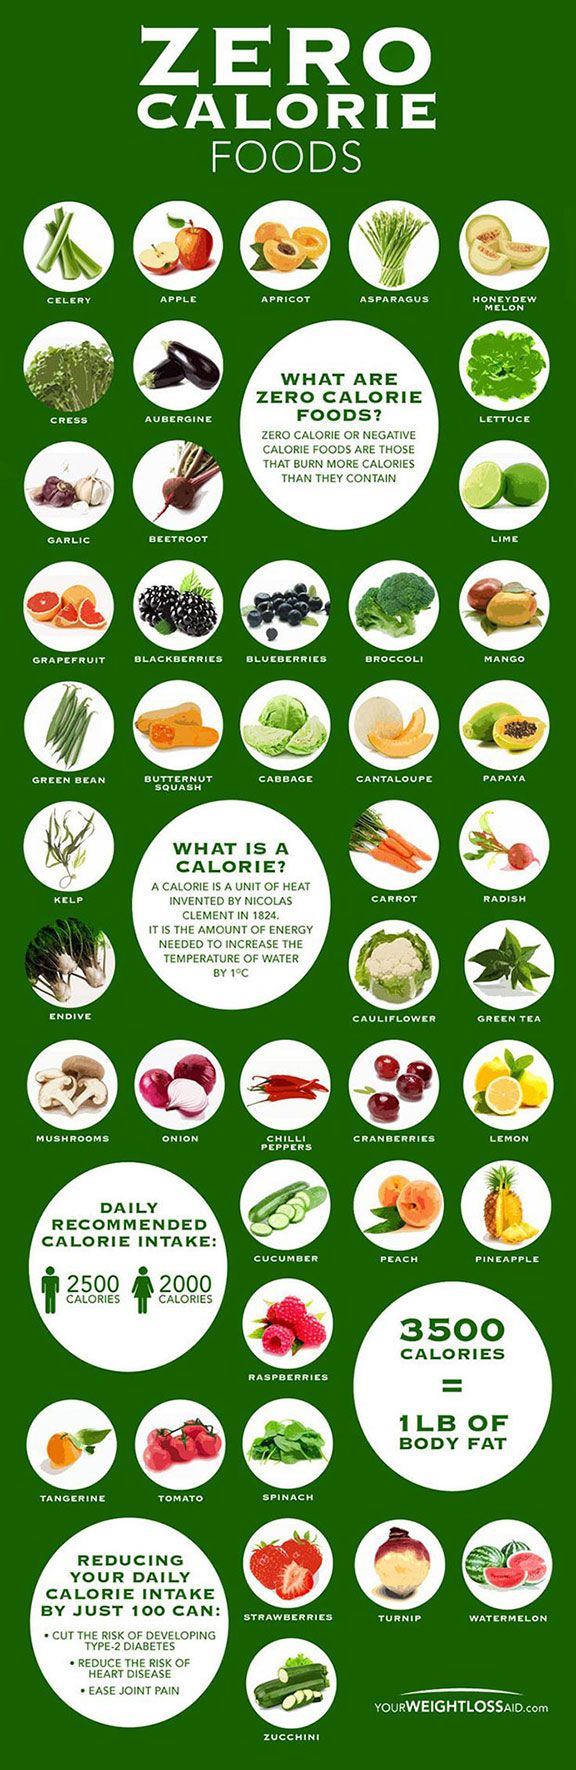 Dr oz best weight loss diets